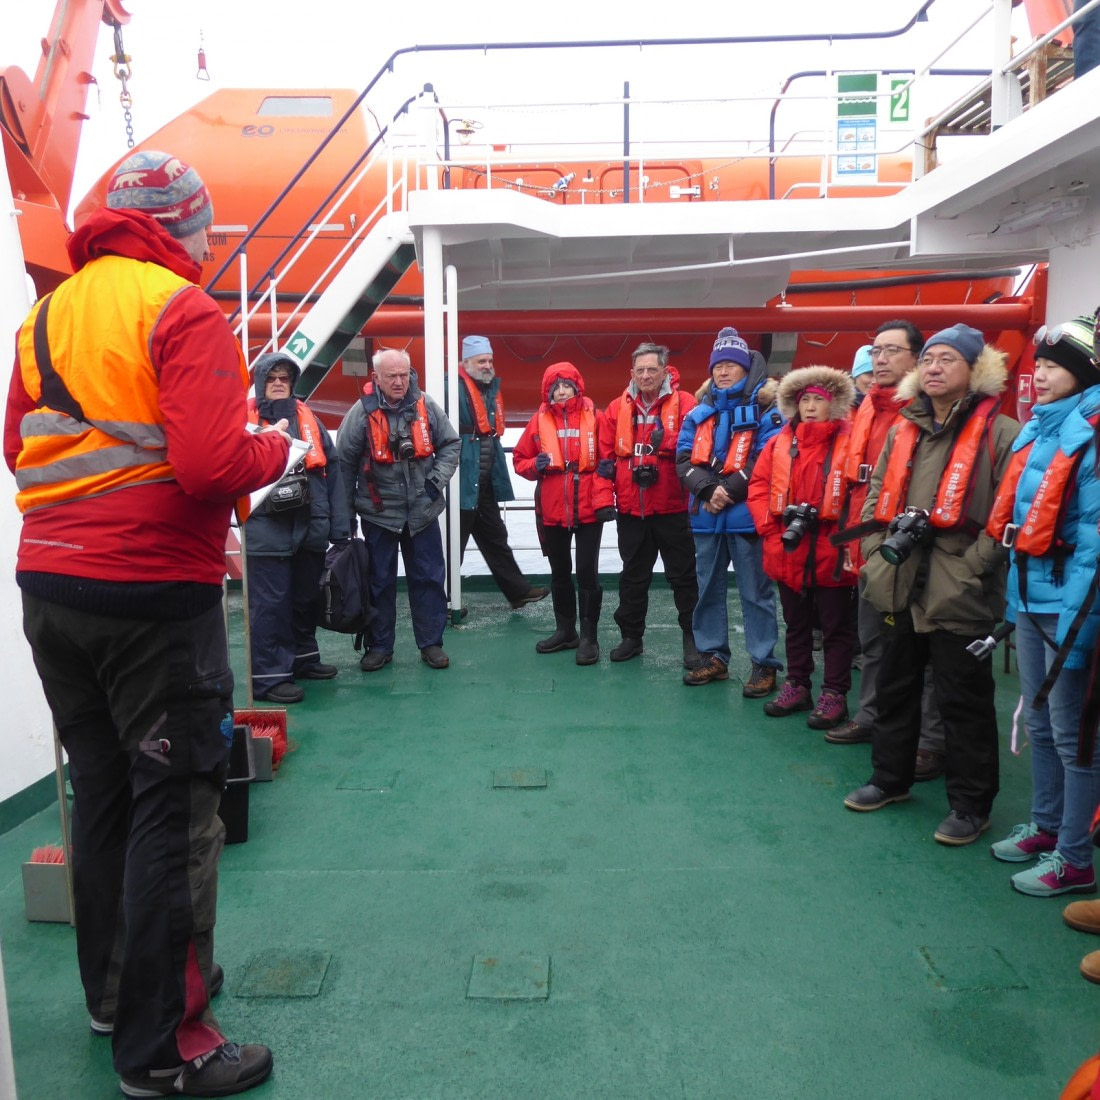 Helicopter briefing on deck